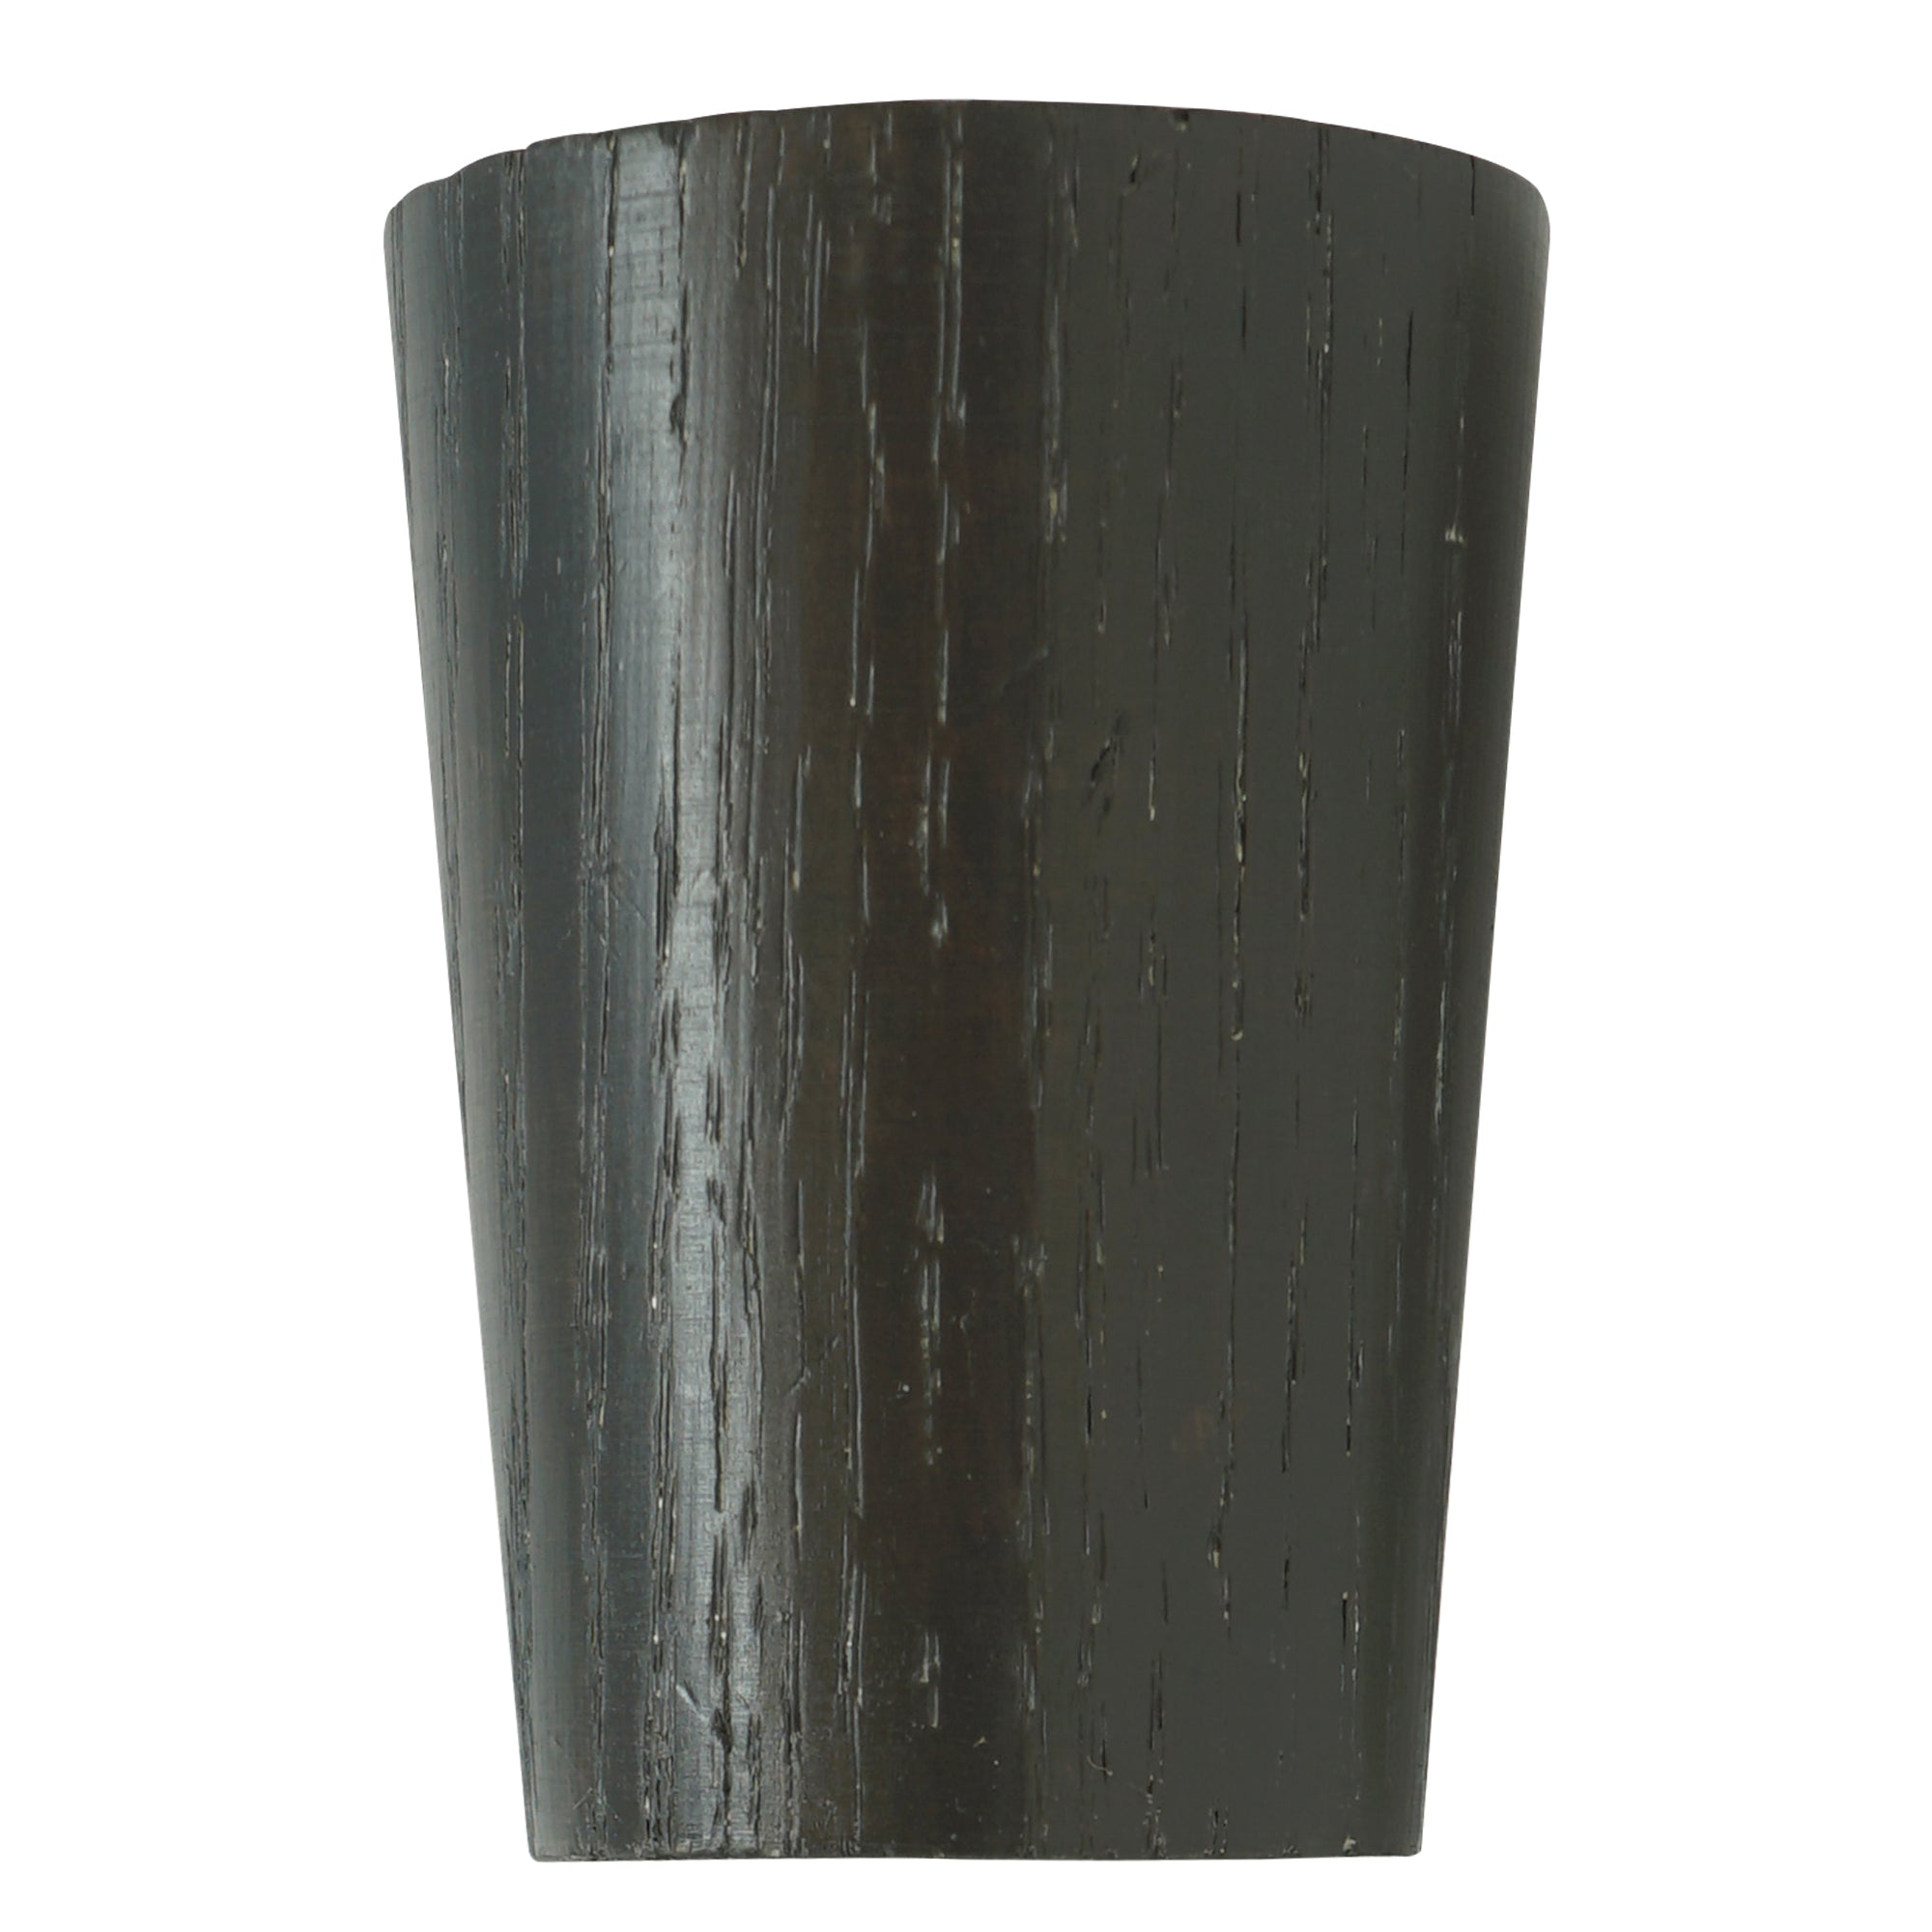 Wood Taper Finial - Charcoal Finish